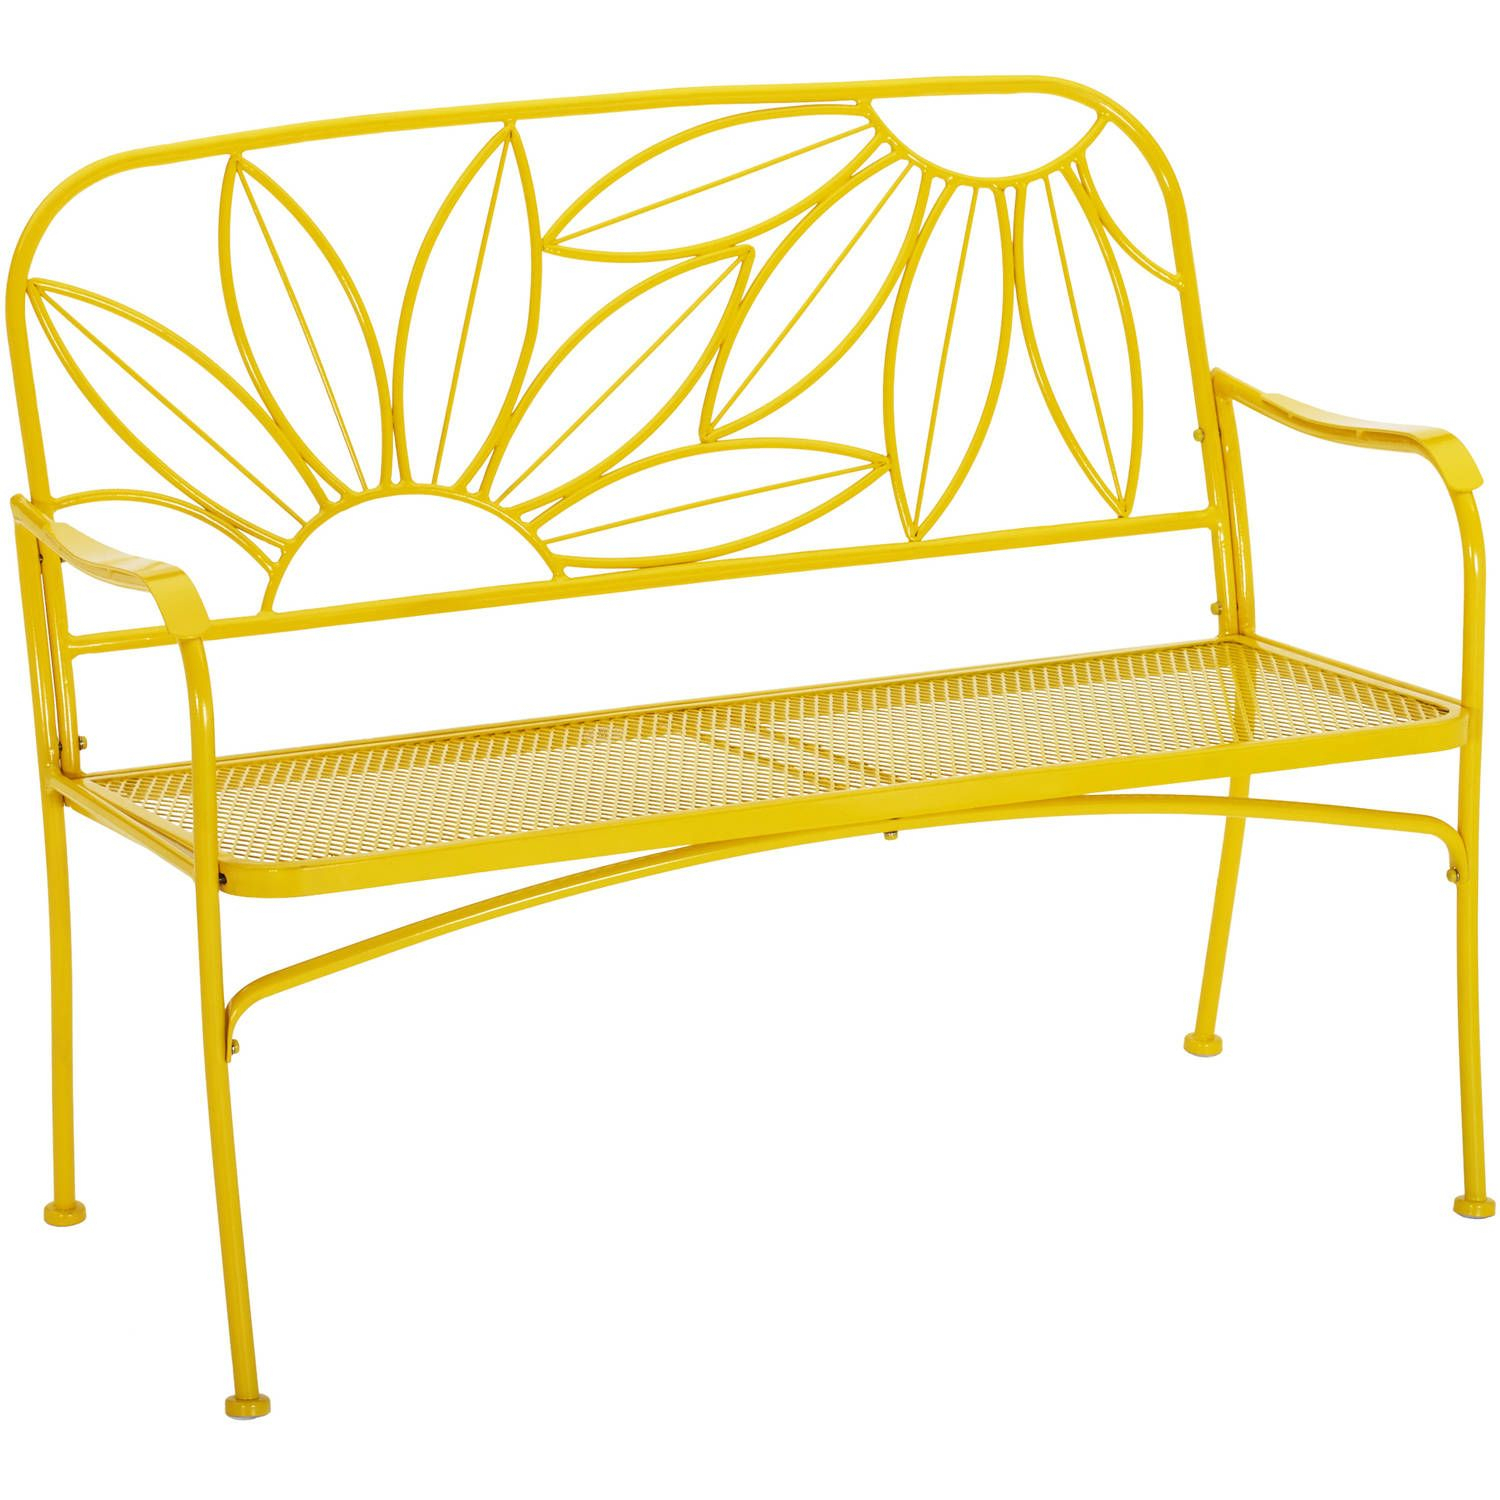 Mainstays Hello Sunny Outdoor Patio Bench, Yellow | Patio Pertaining To Michelle Metal Garden Benches (View 4 of 25)